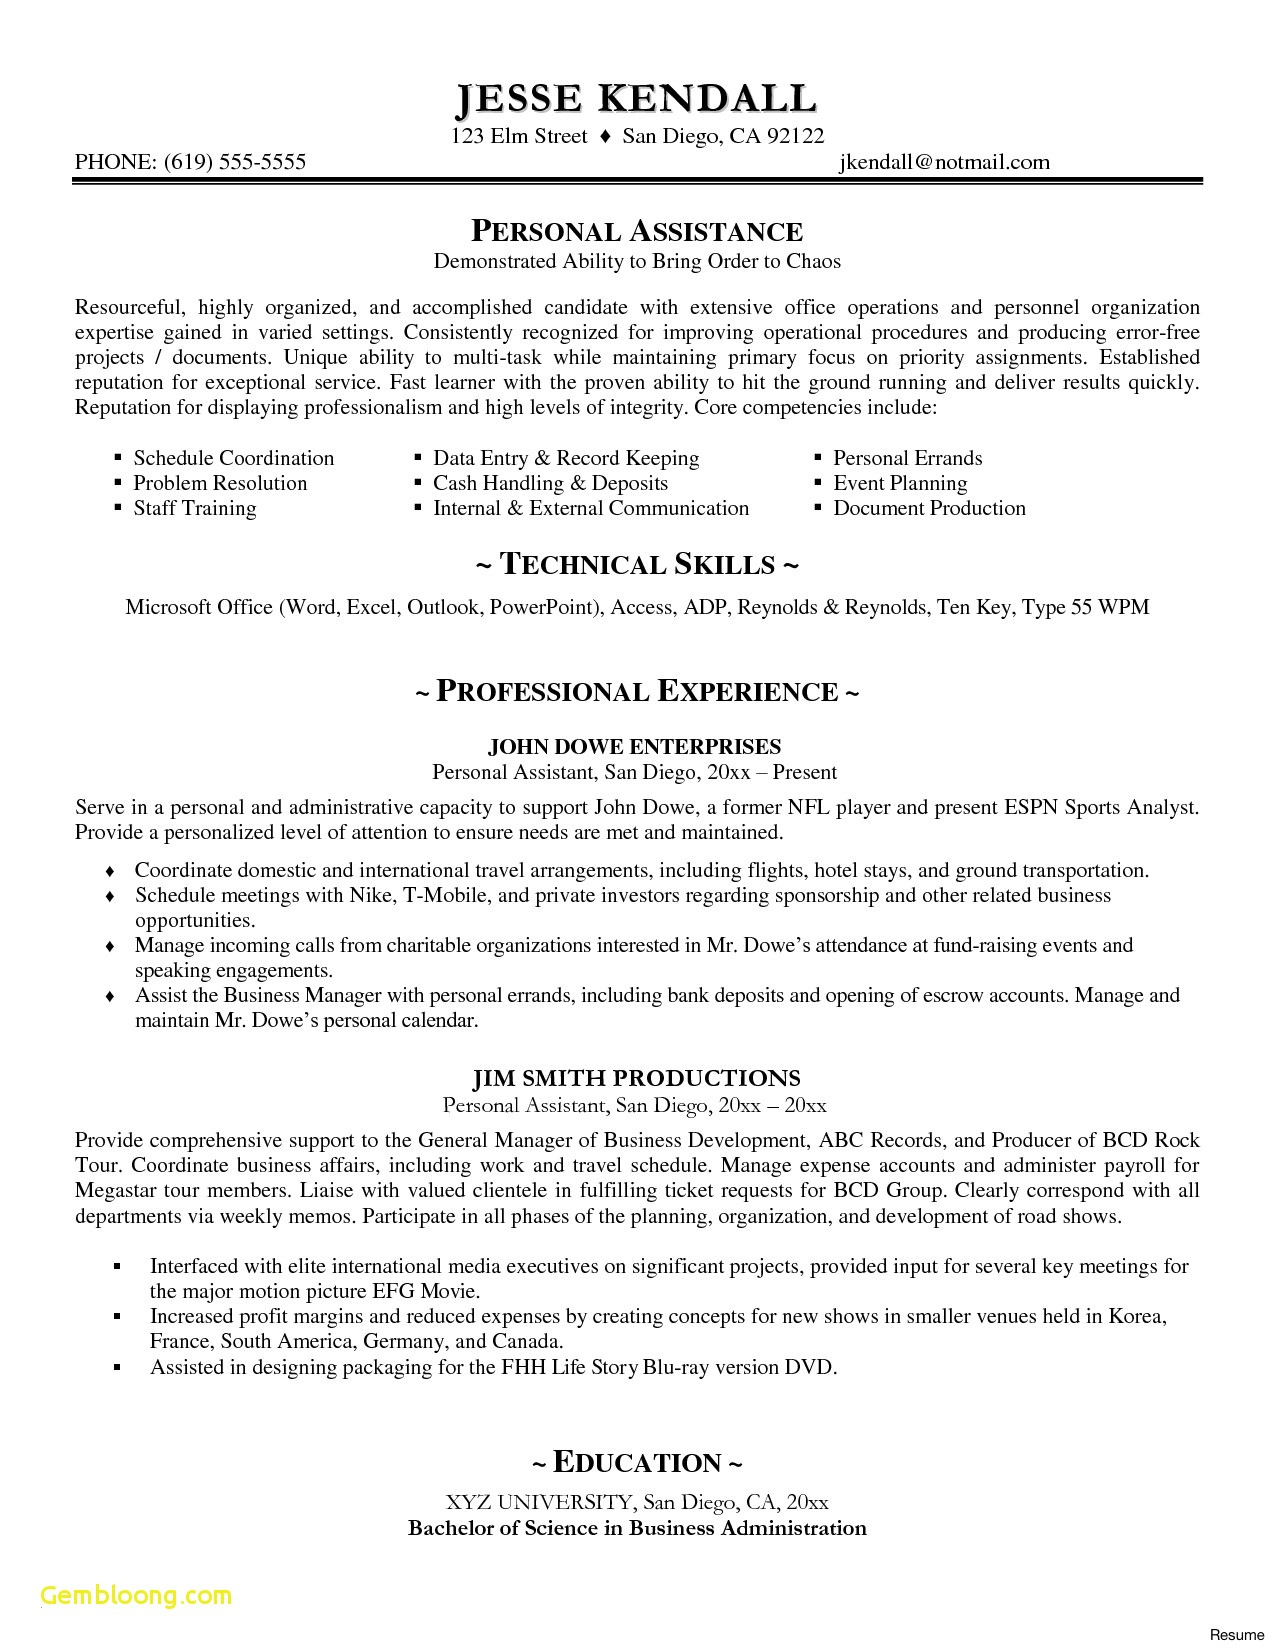 Entry Level Data Scientist Resume - Personal assistant Resume Sample New Resume Samples Doc New